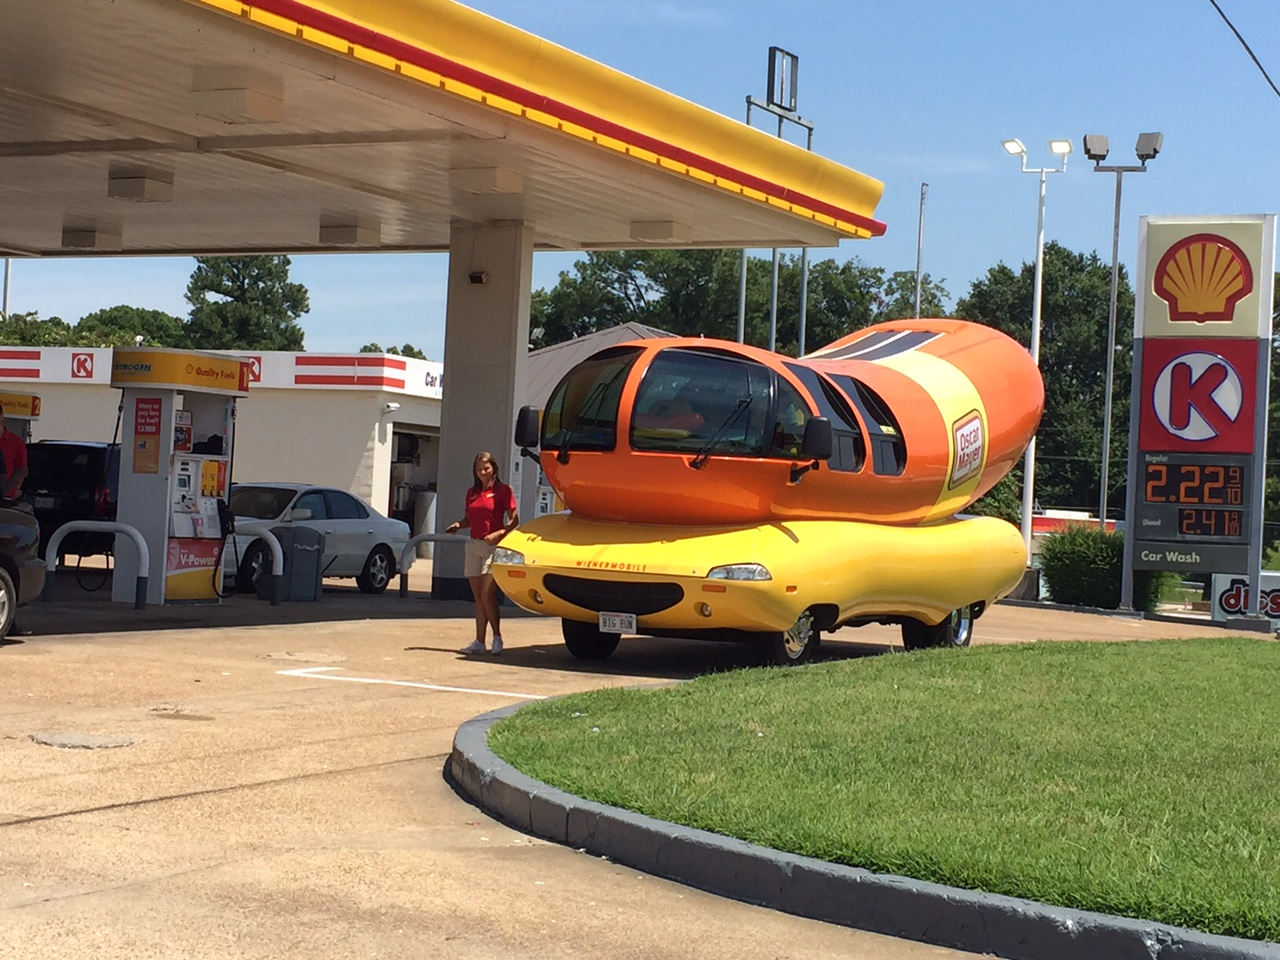 10 Food Trucks Qui Sortent Vraiment De Lordinaire as well Galleries as well Wienermobile Sandwiched Between Two further Daily Fun Facts Wienermobiles besides Hot Dog My Encounter With Oscar Mayer Wienermobile. on oscar mayer wienermobile inside